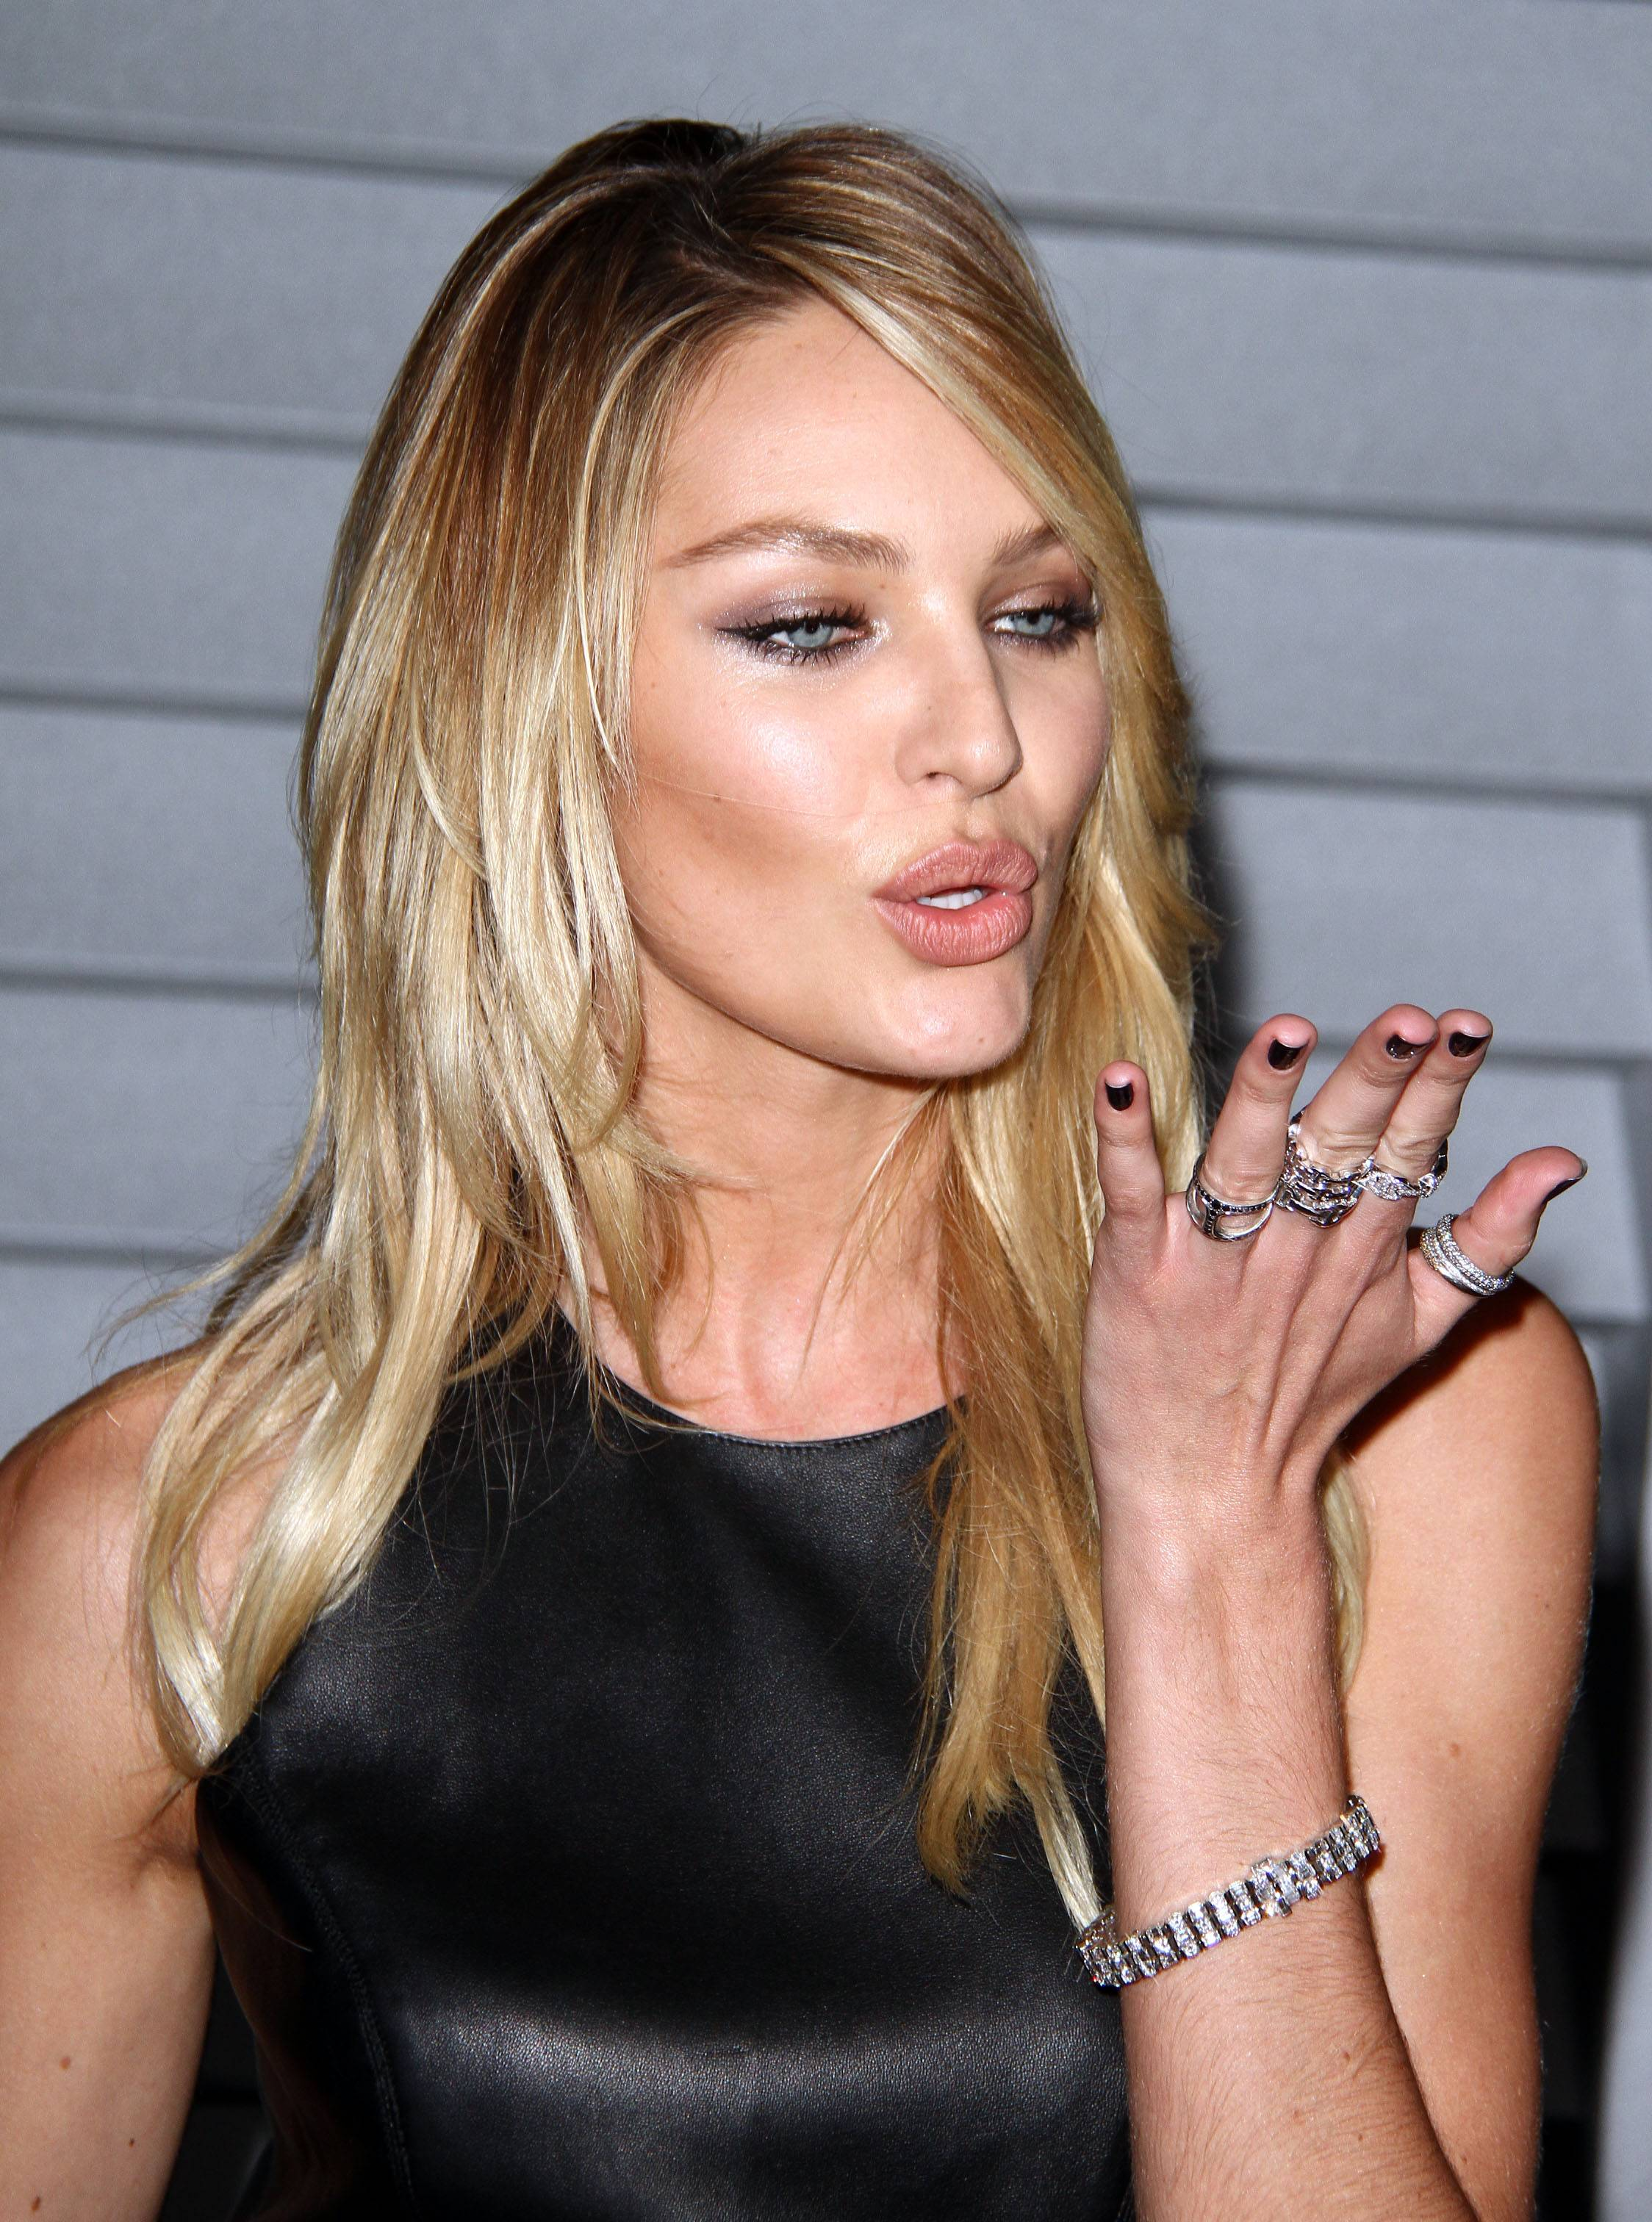 Candice Swanepoel at The Maxim Hot 100 Women Of 2014 Celebration in LA   183264 ...